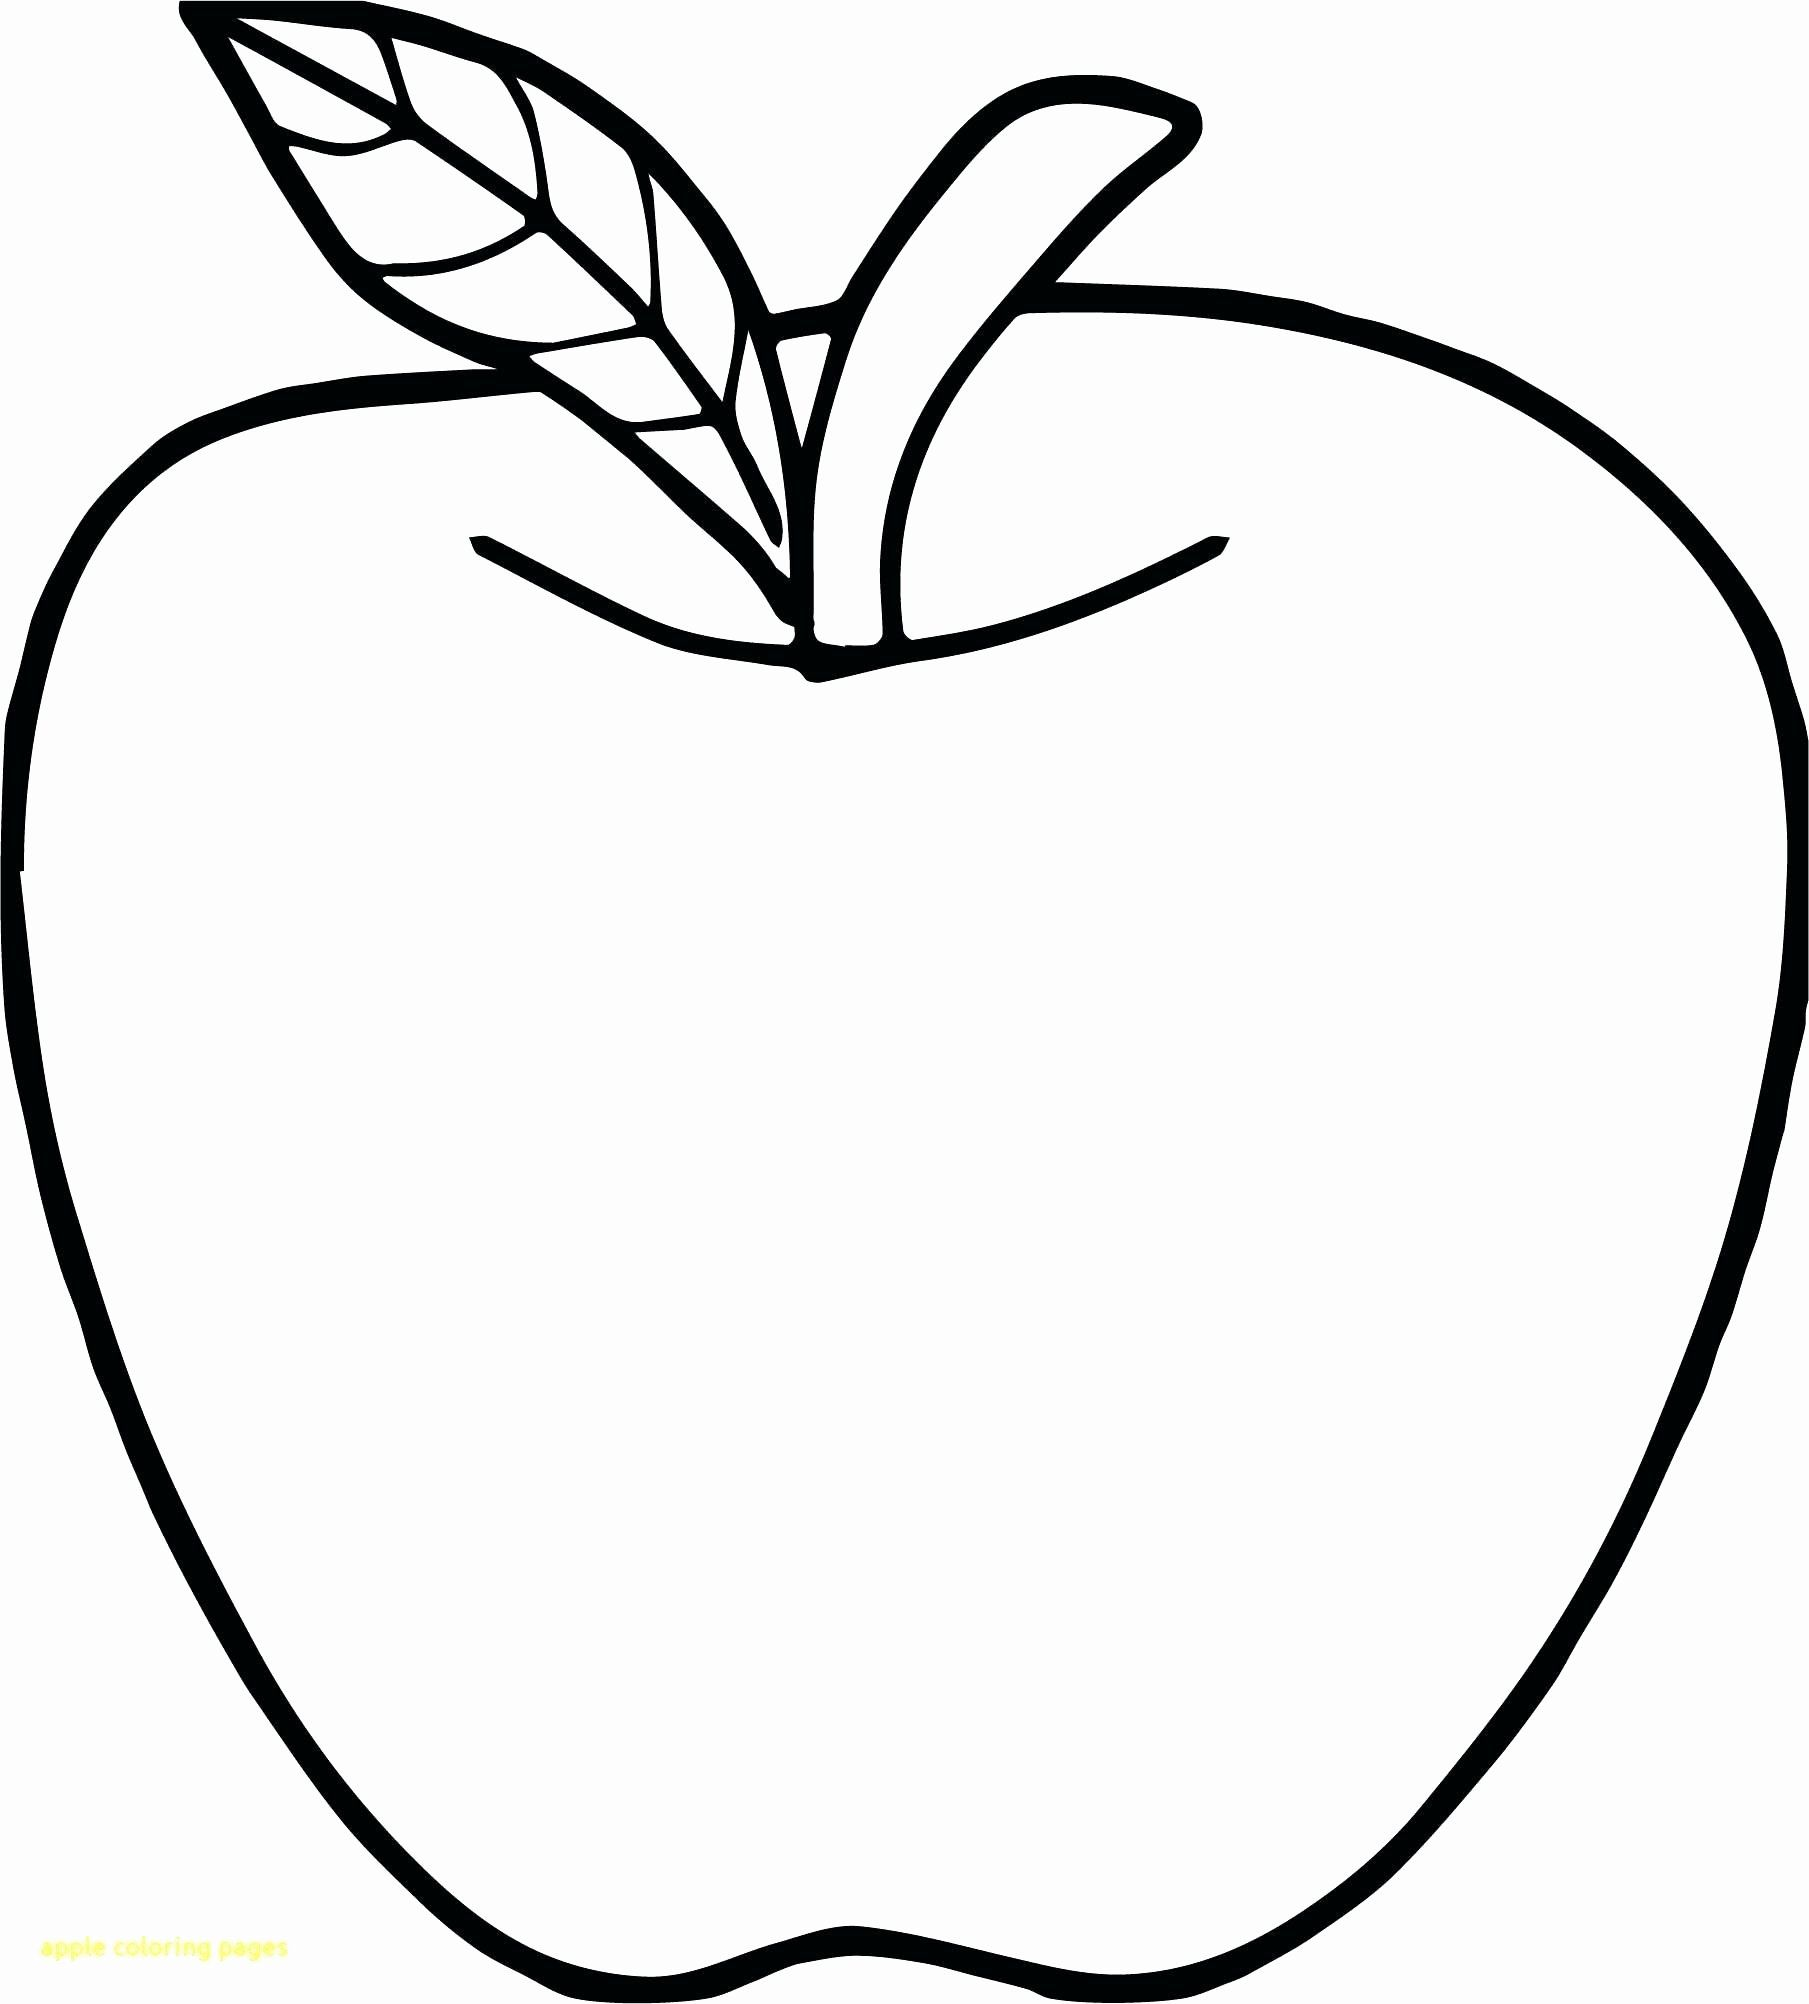 Coloring Apple Tree Clipart Beautiful Coloring Pages Coloring Pages Back To School Drag Apple Coloring Pages Fruit Coloring Pages Free Printable Coloring Pages